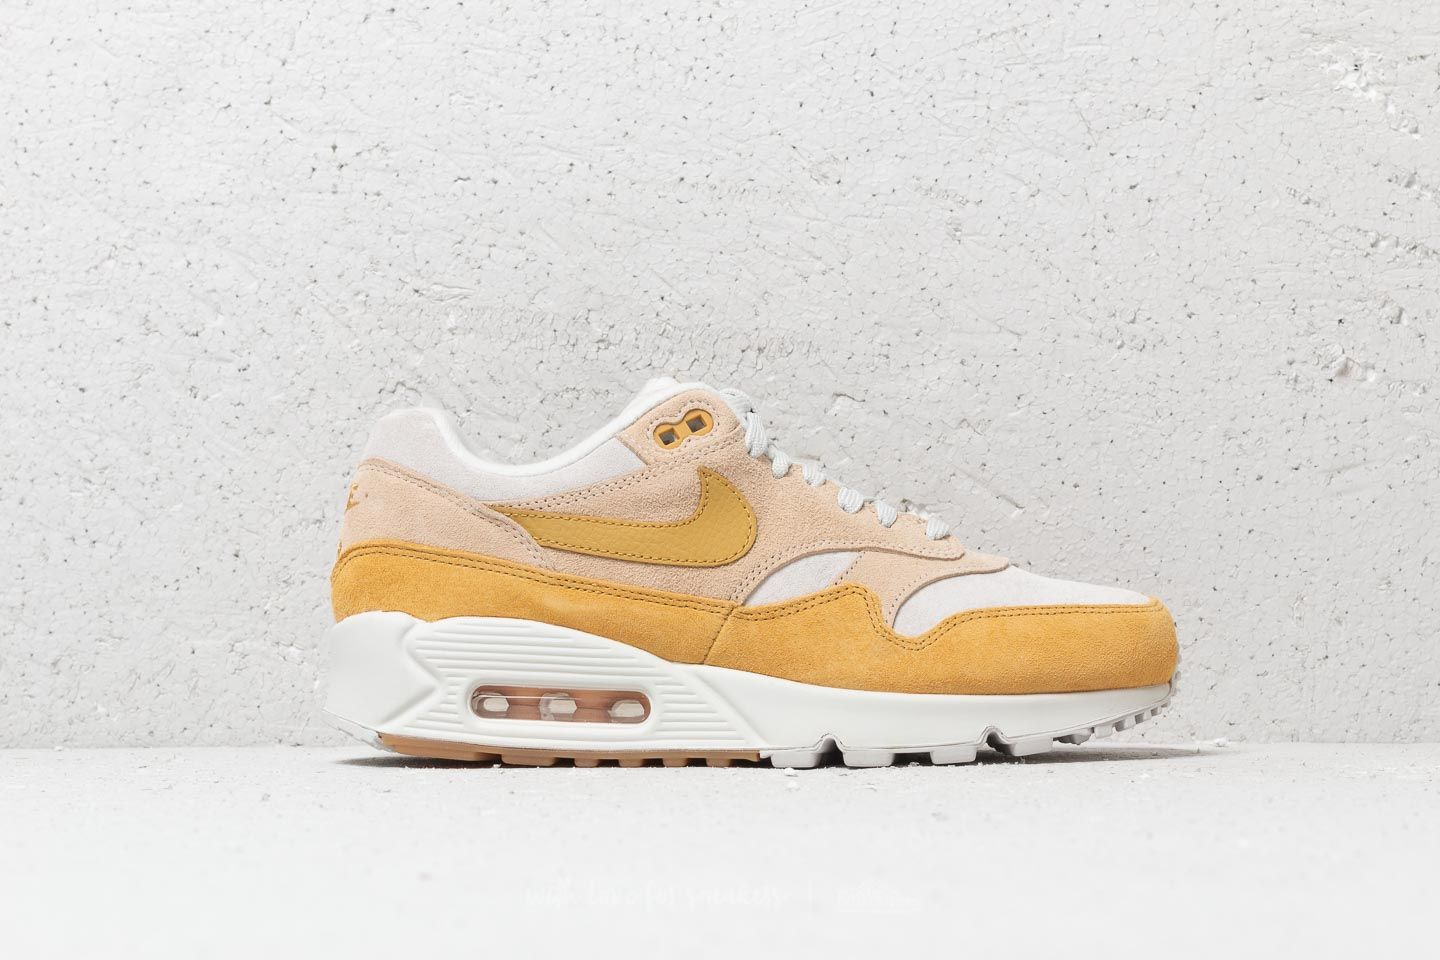 Nike Air Max 901 W Guava Ice Wheat Gold | Footshop